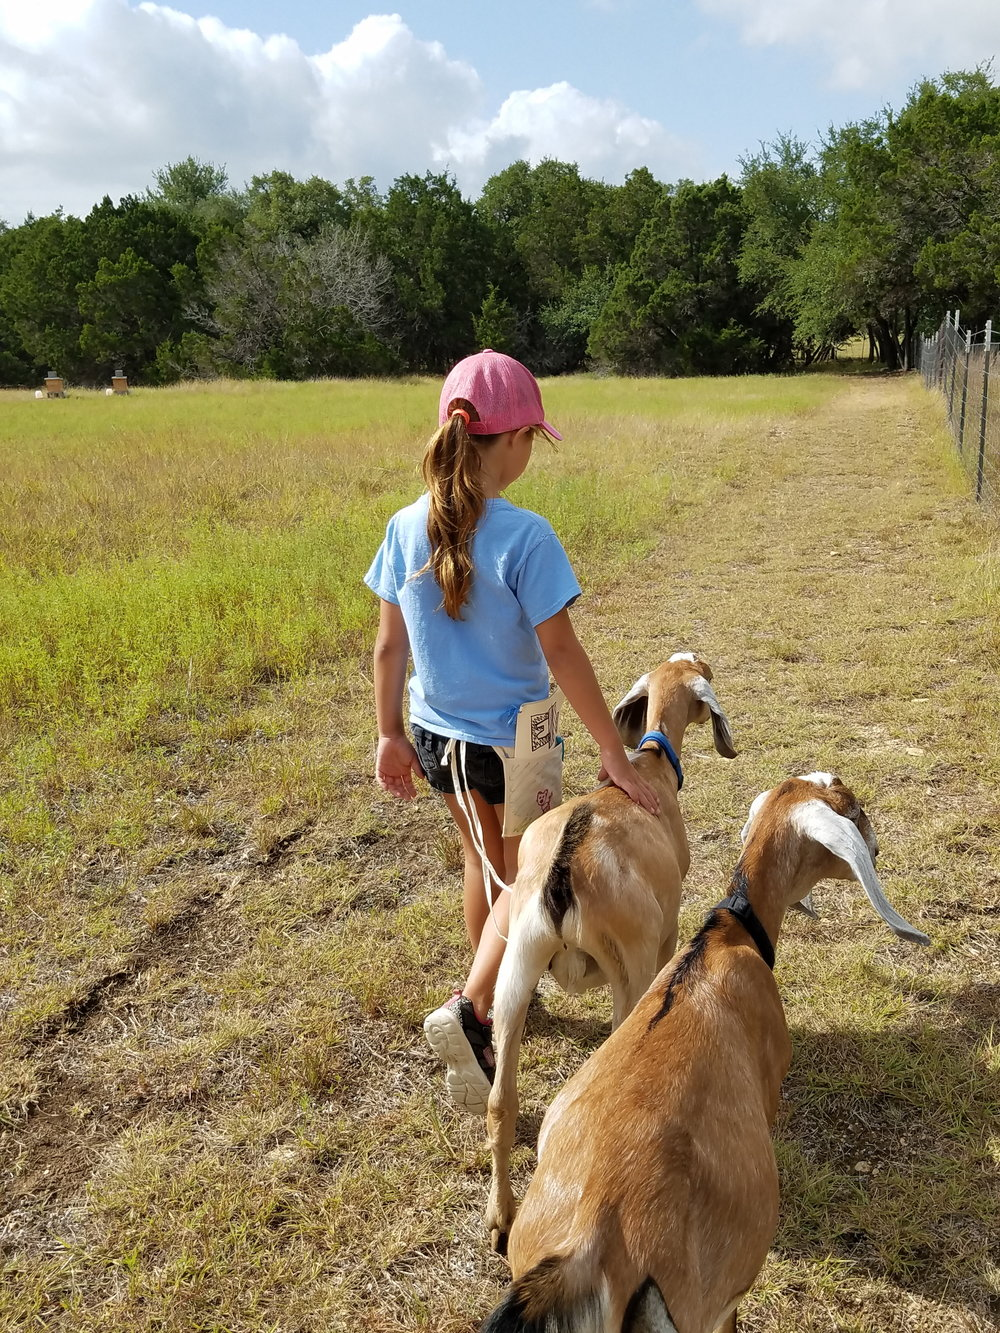 This is what happens when children have a chance to get outside and and just be among nature. They connect with the animals and their surroundings in a whole new way.